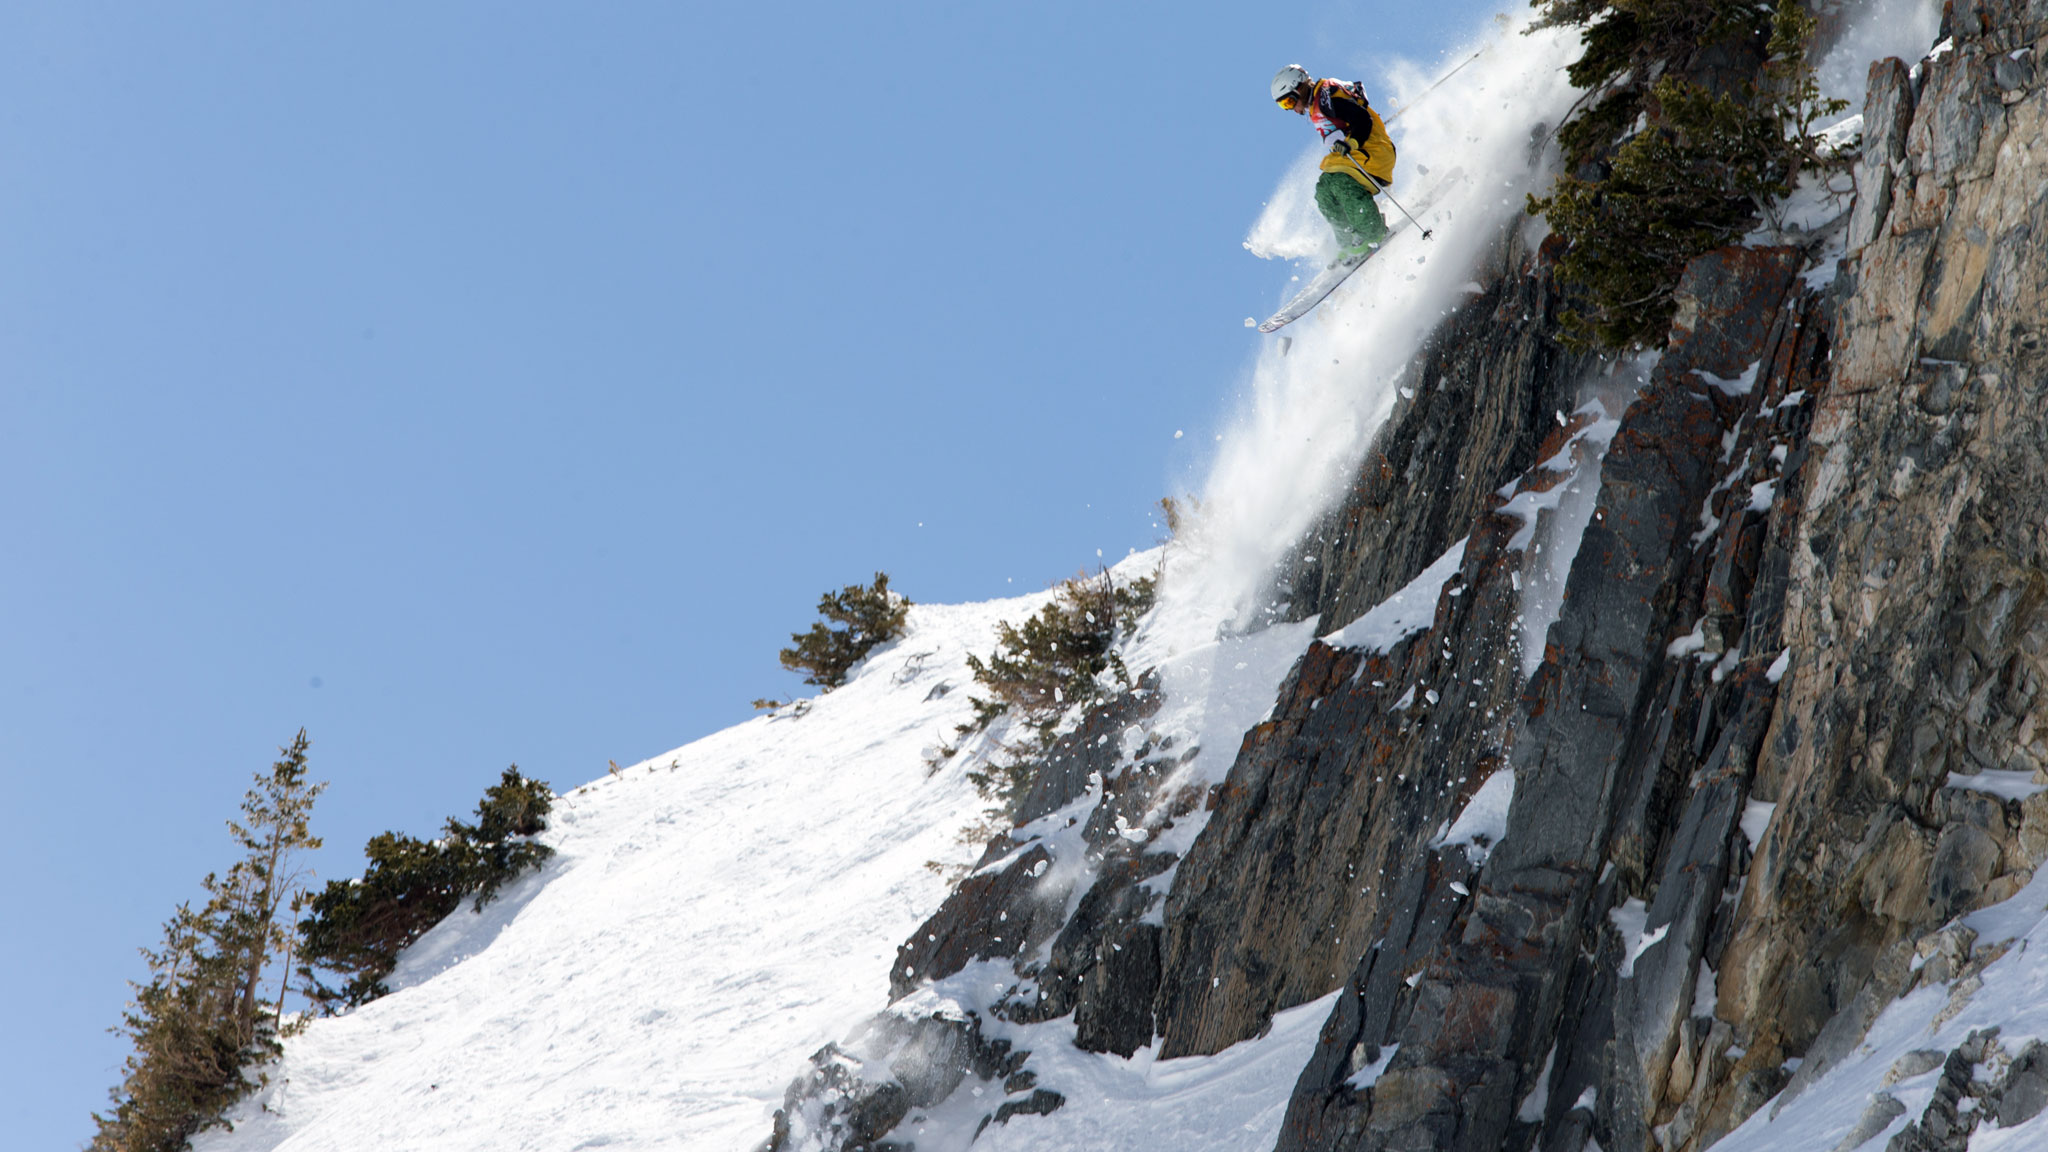 Patrick Baskins during a qualifying stop last winter. Baskins earned a spot on this year's FWT.